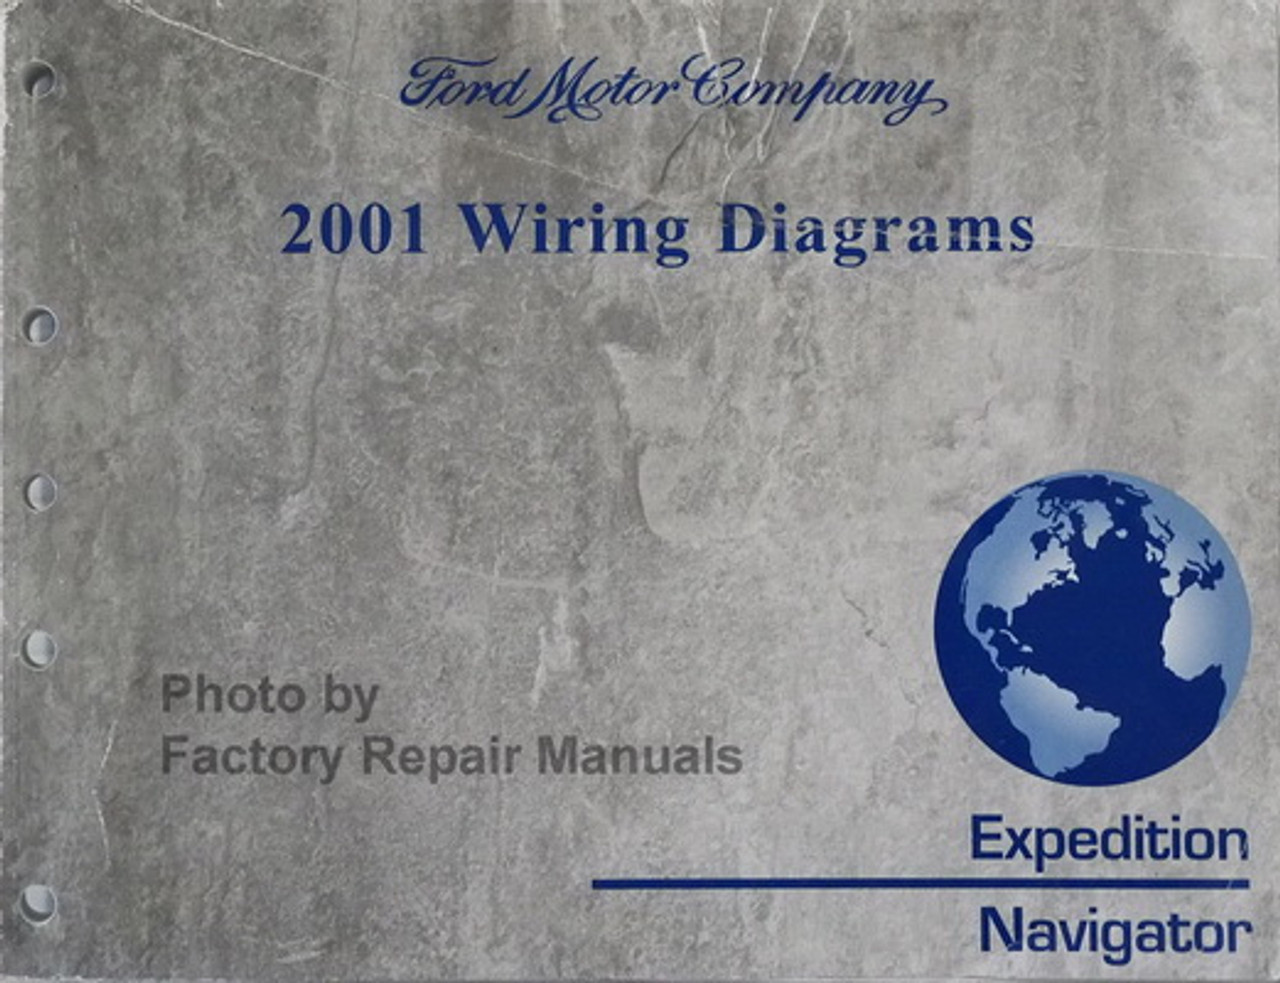 2001 Ford Expedition Wiring Diagram from cdn11.bigcommerce.com